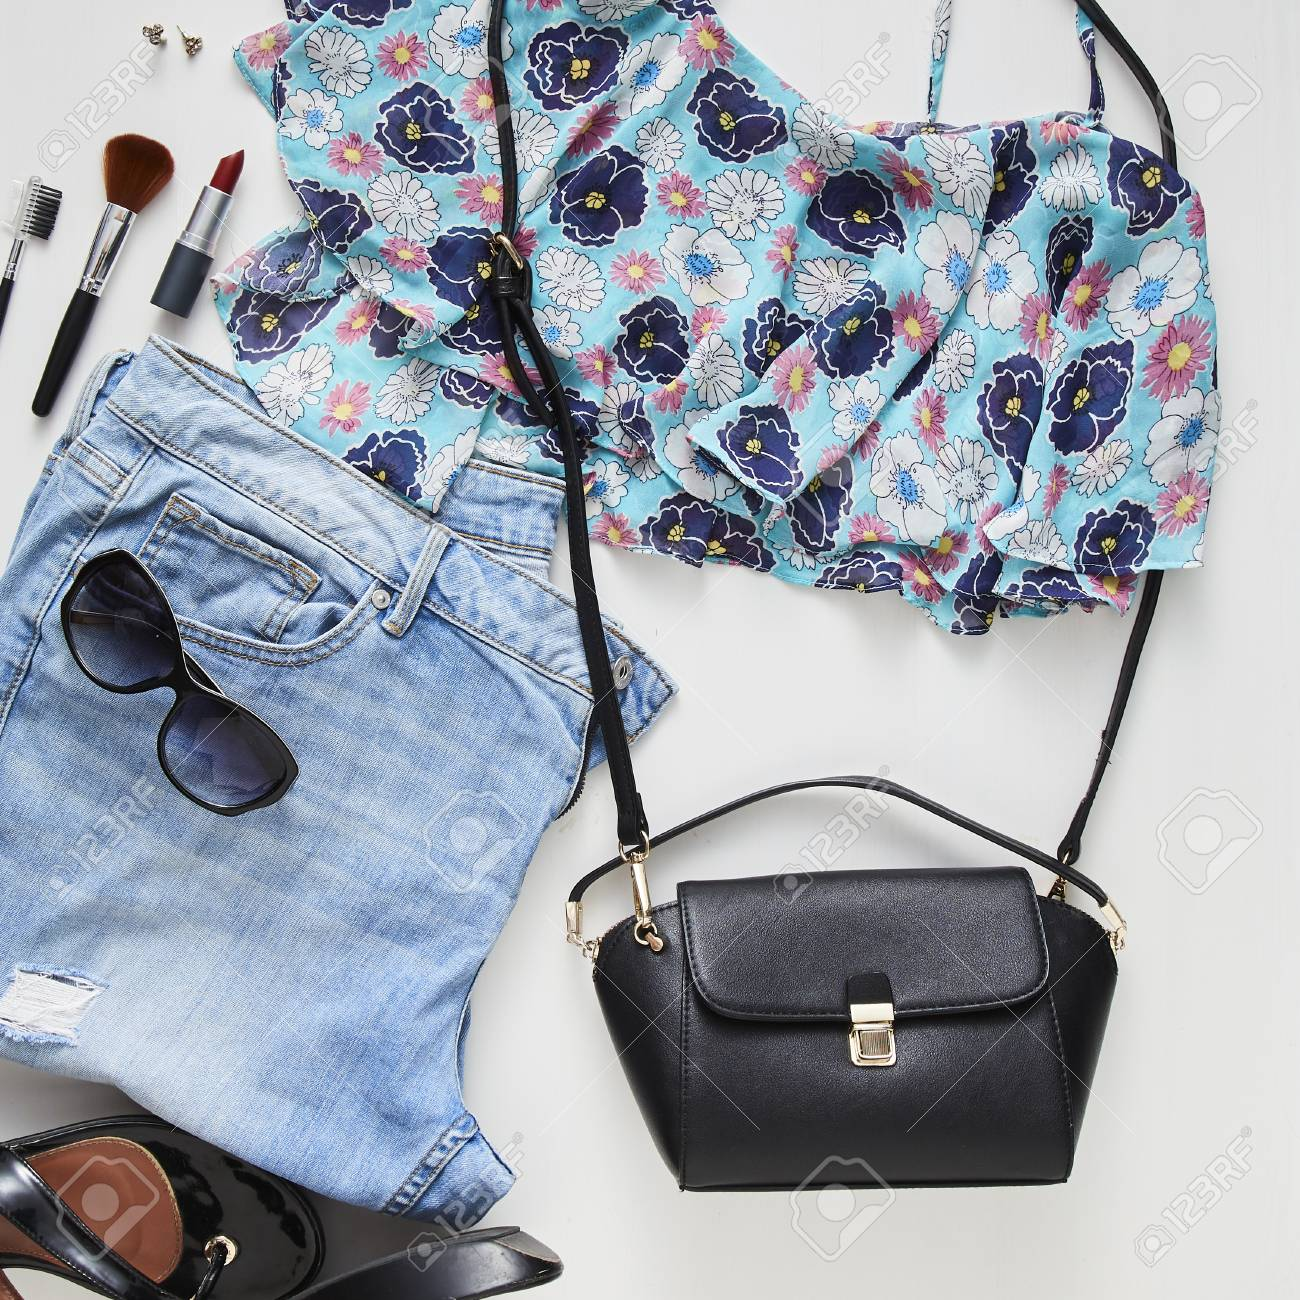 18f6b1176cc2 flat lay feminine clothes and accessories collage with jean,sunglasses,  earring White wood table